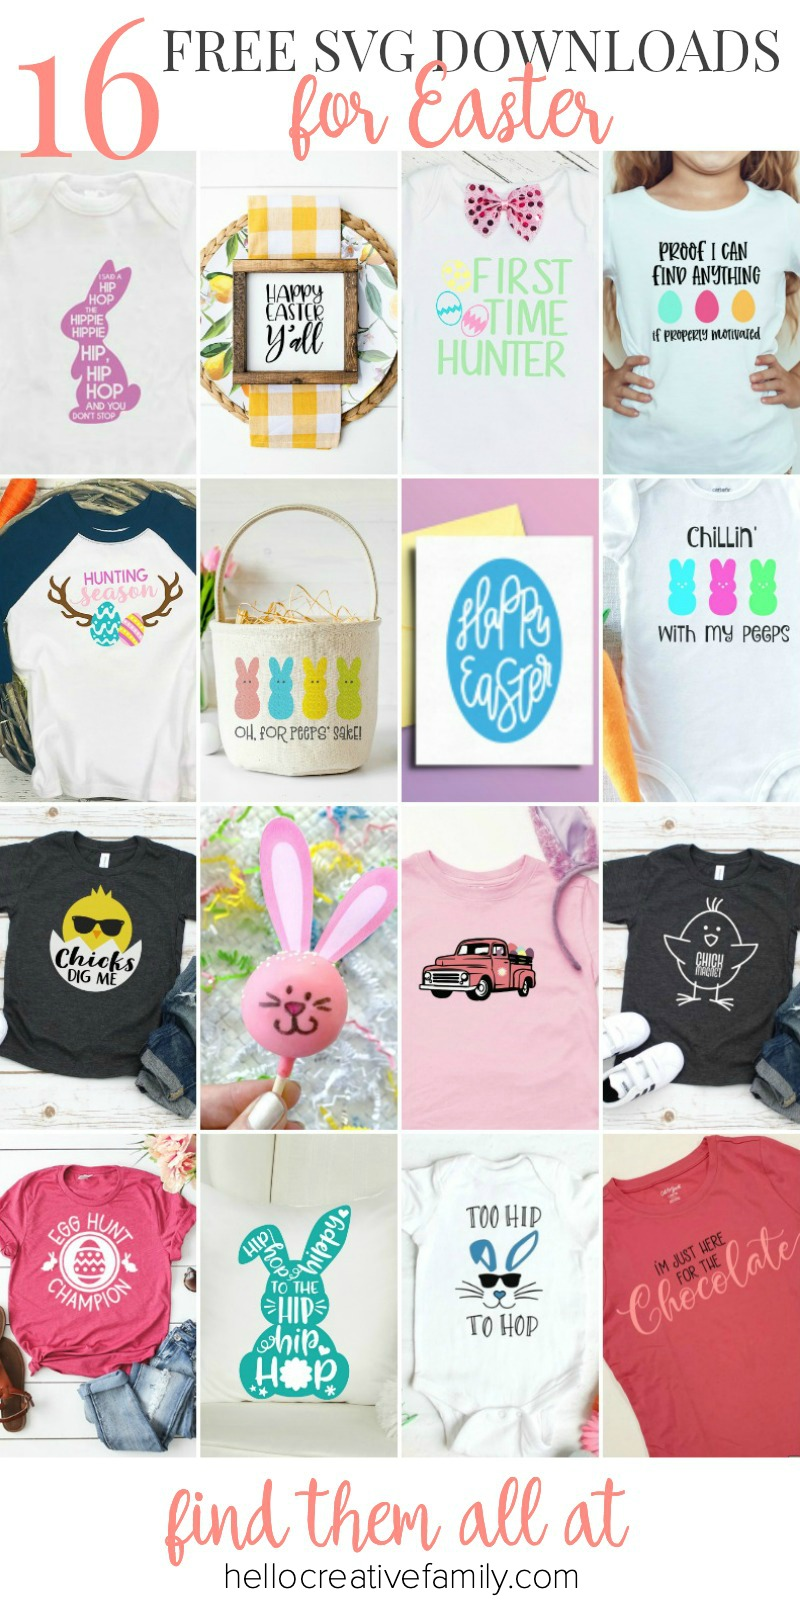 """We're sharing 16 Free Easter SVG Cut Files including our very own """"Chillin' With My Peeps"""" cut file. So pull out those Cricuts and Silhouettes and craft up an easy project! From the Easter Bunny, to adorable chicks, to Easter Eggs and Peeps! We've got your Easter crafting covered! #Cricut #Silhouette #Easter #CutFile #FreeSVG #SVG"""